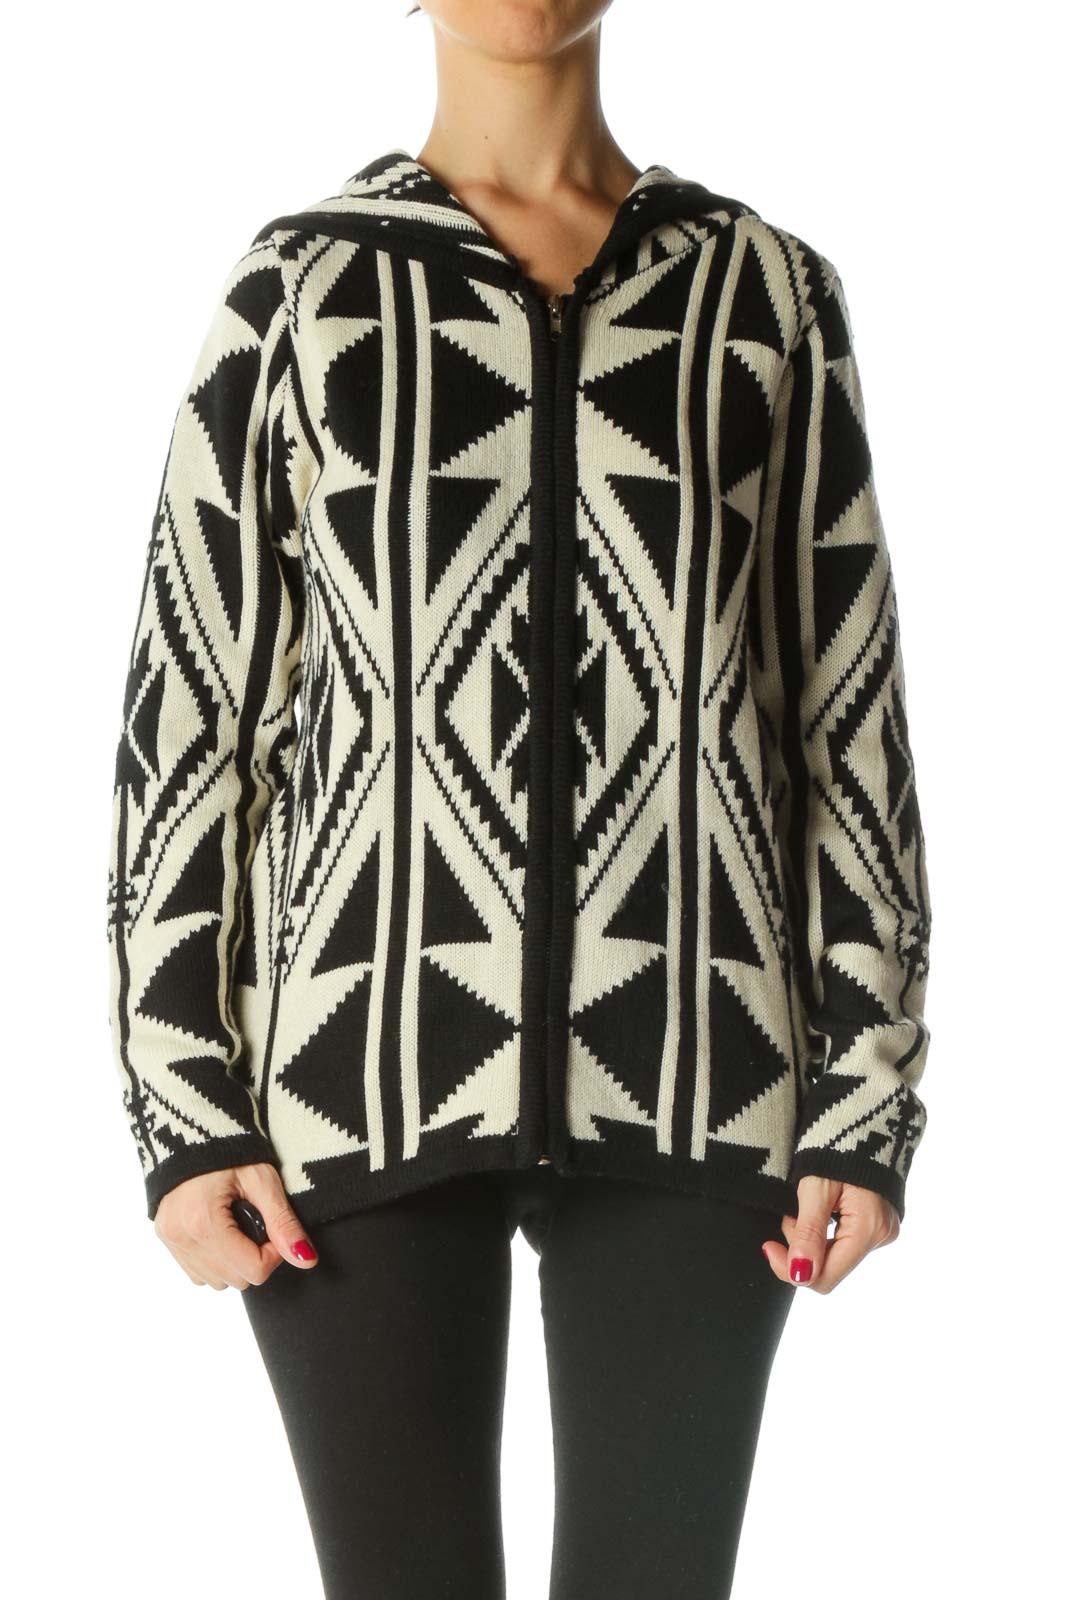 Black Cream Hooded Knitted Pattern Zippered Cardigan